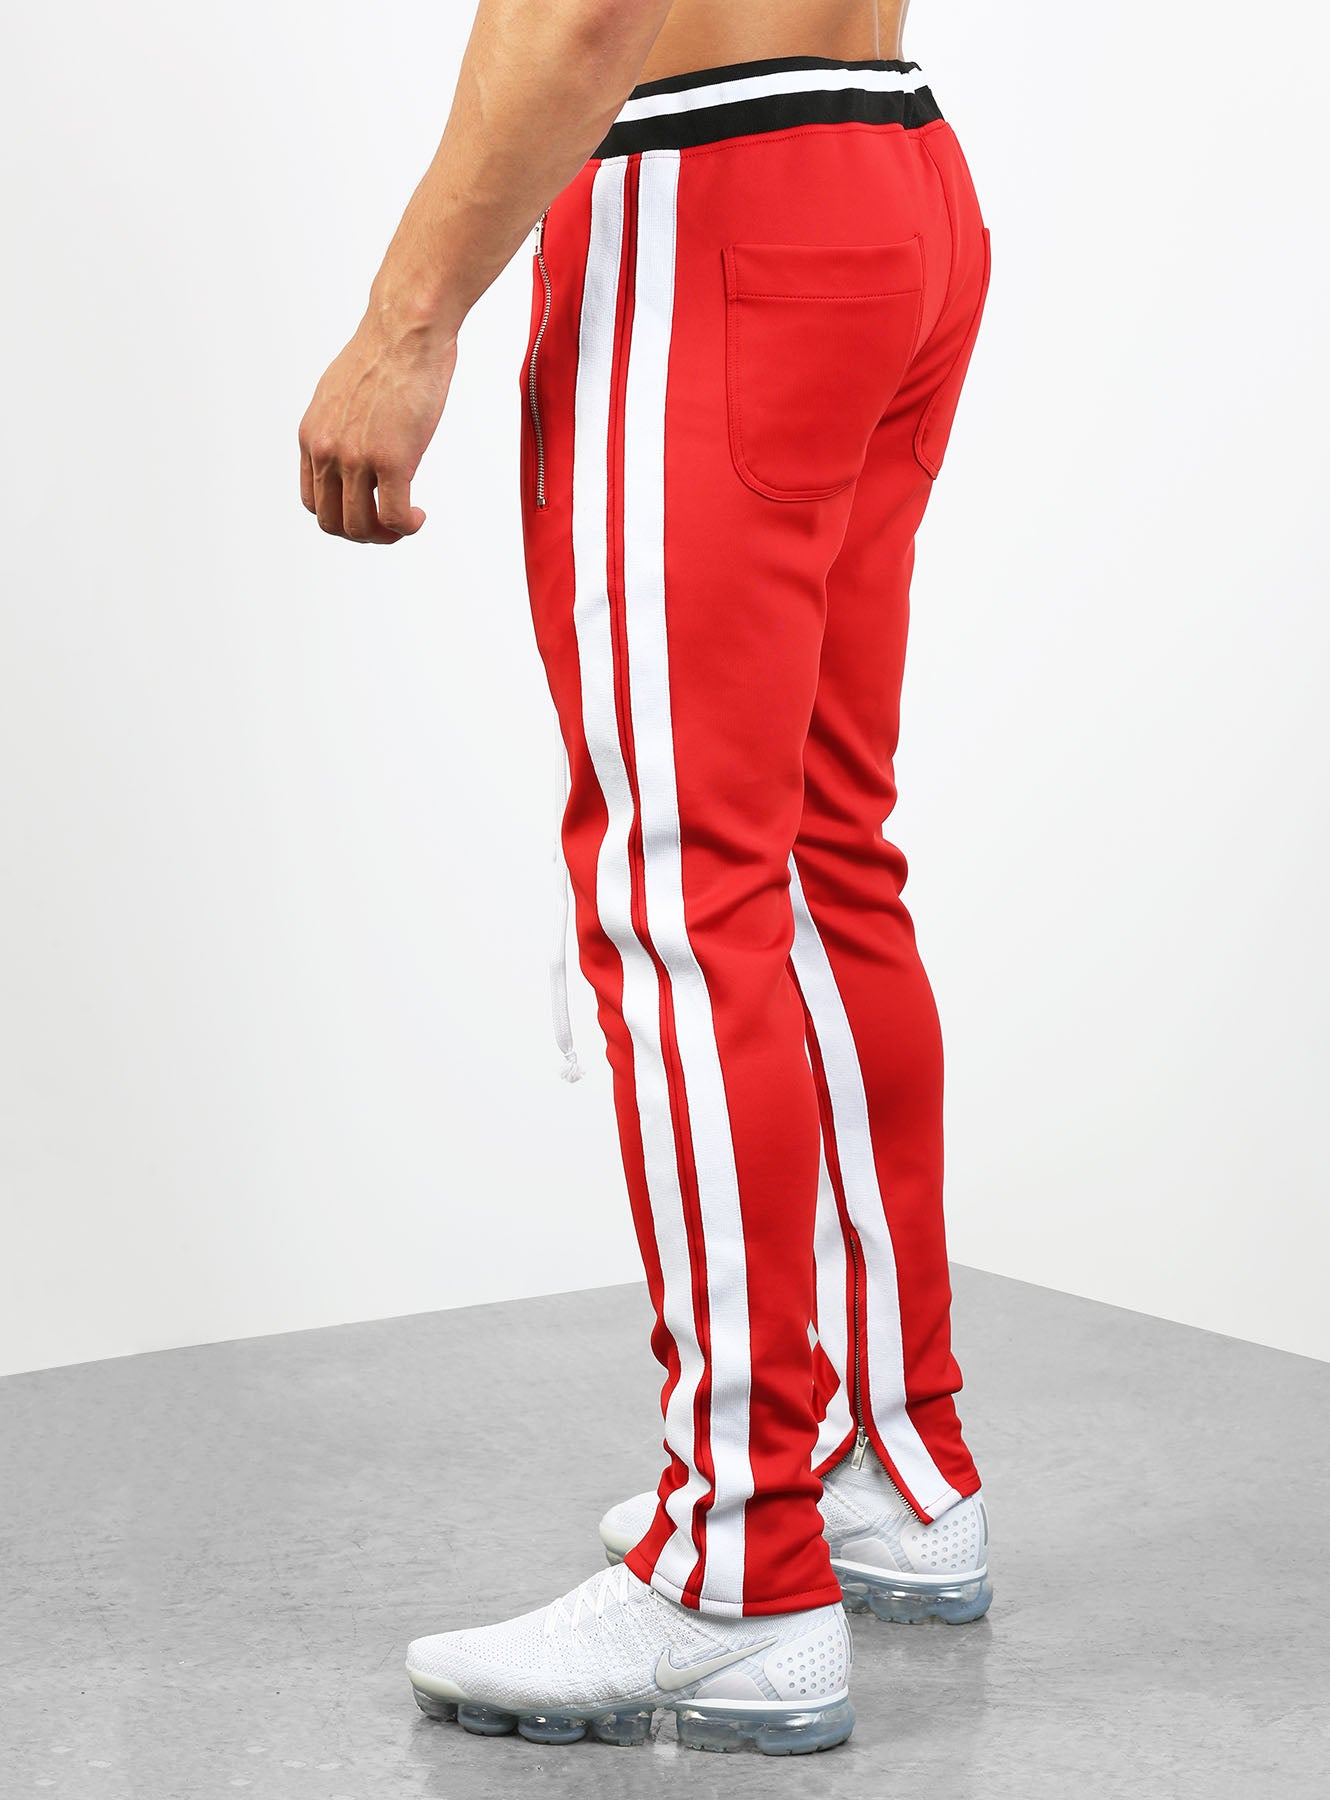 double striped track pants v2 in red and white hoodstore hoodstore